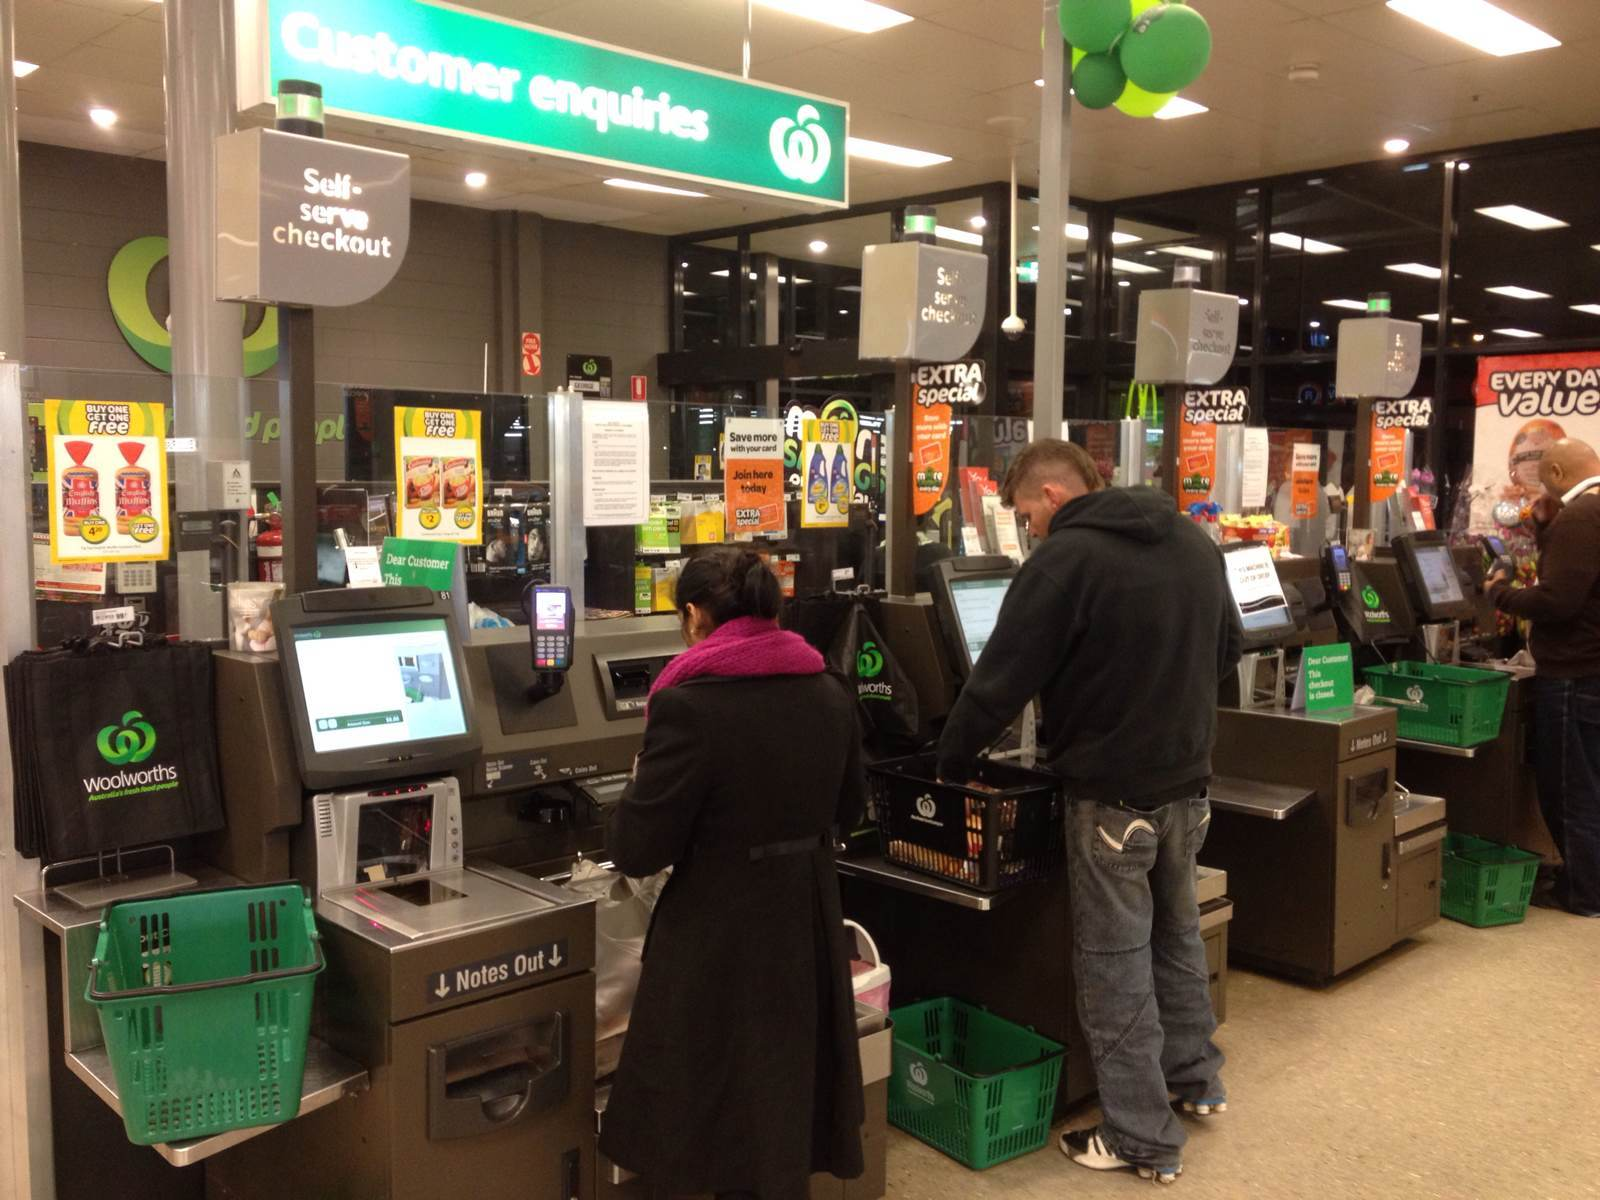 Design of supermarket checkout counters